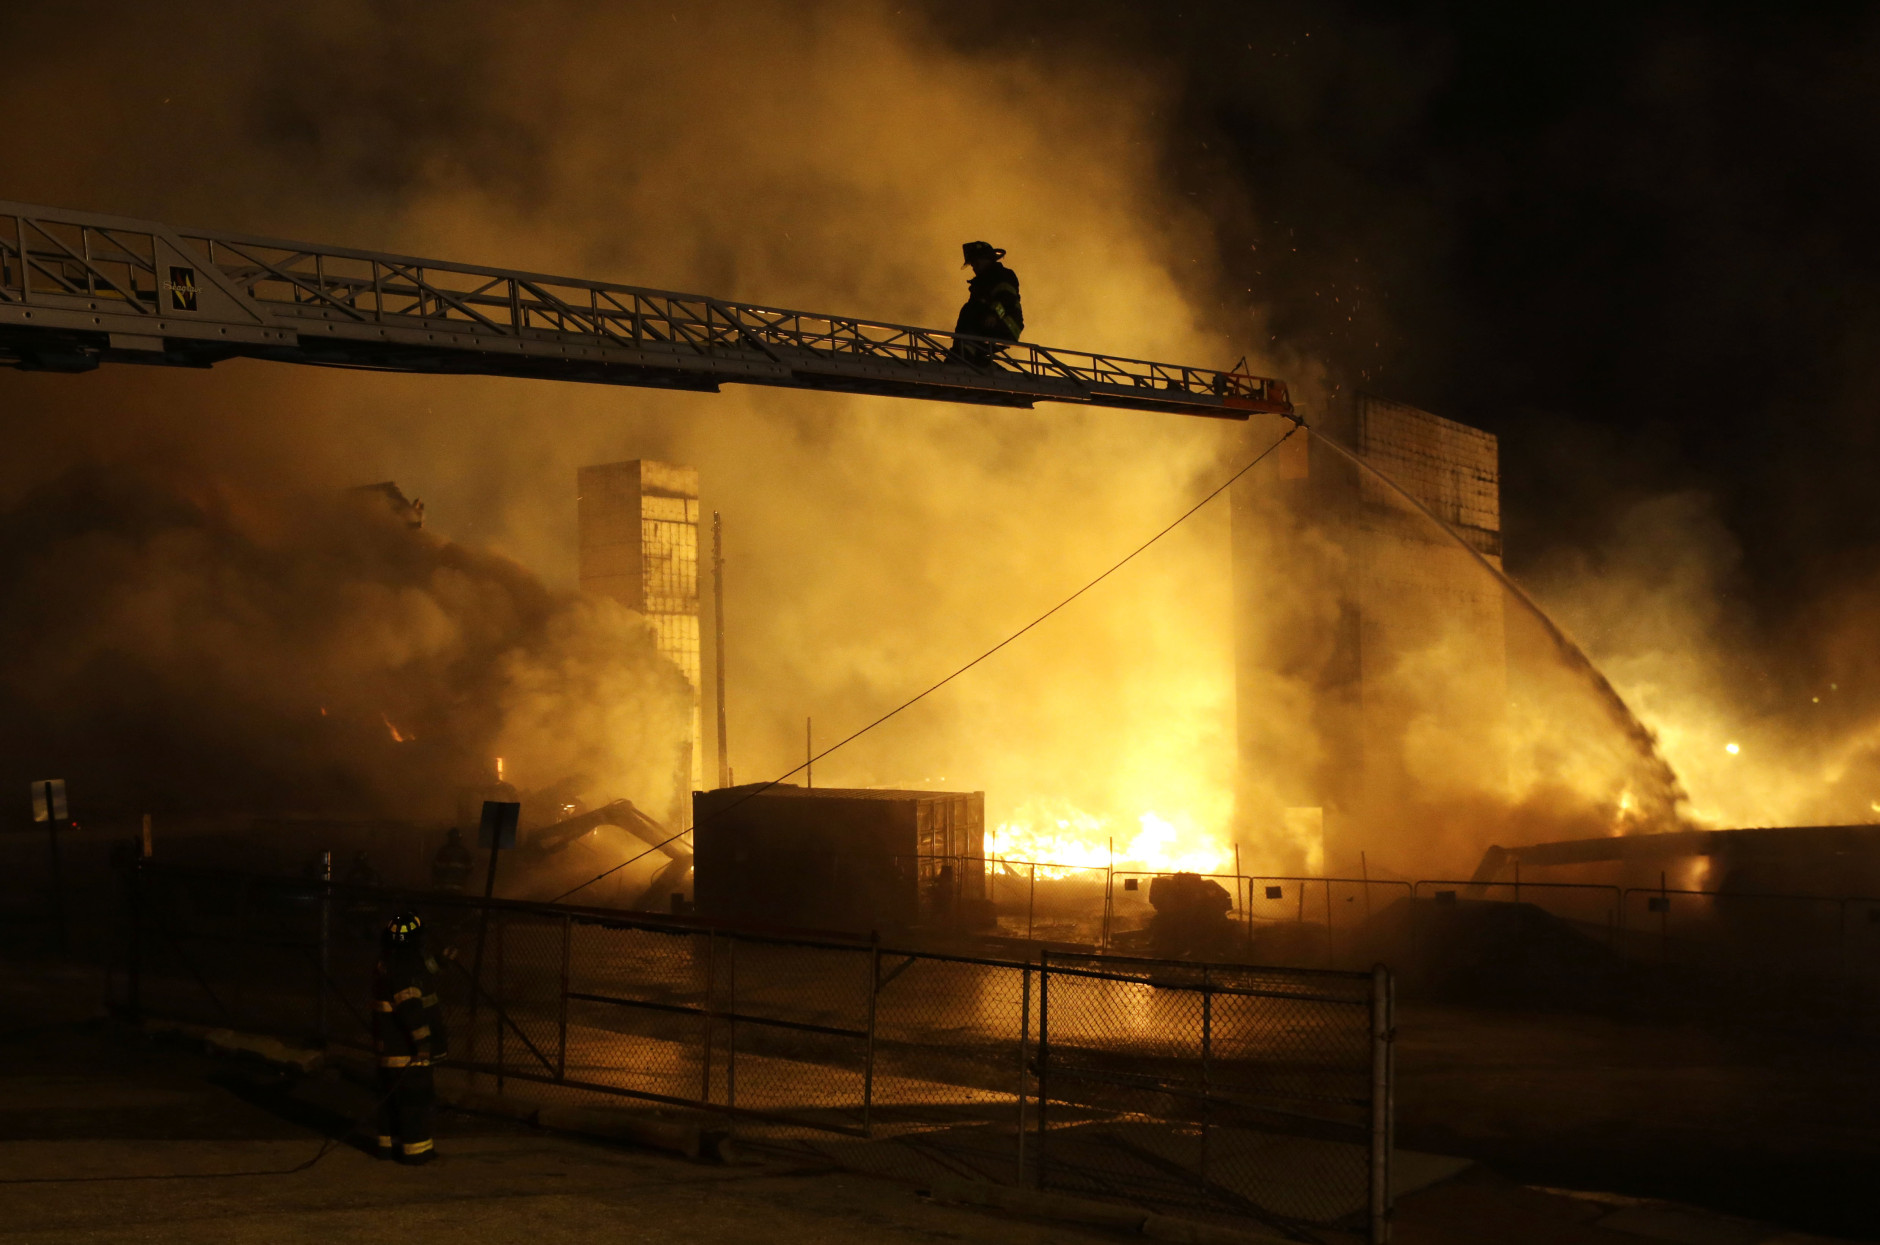 Firefighters battle a blaze, Monday, April 27, 2015, after rioters plunged part of Baltimore into chaos, torching a pharmacy, setting police cars ablaze and throwing bricks at officers.  (AP Photo/Patrick Semansky)